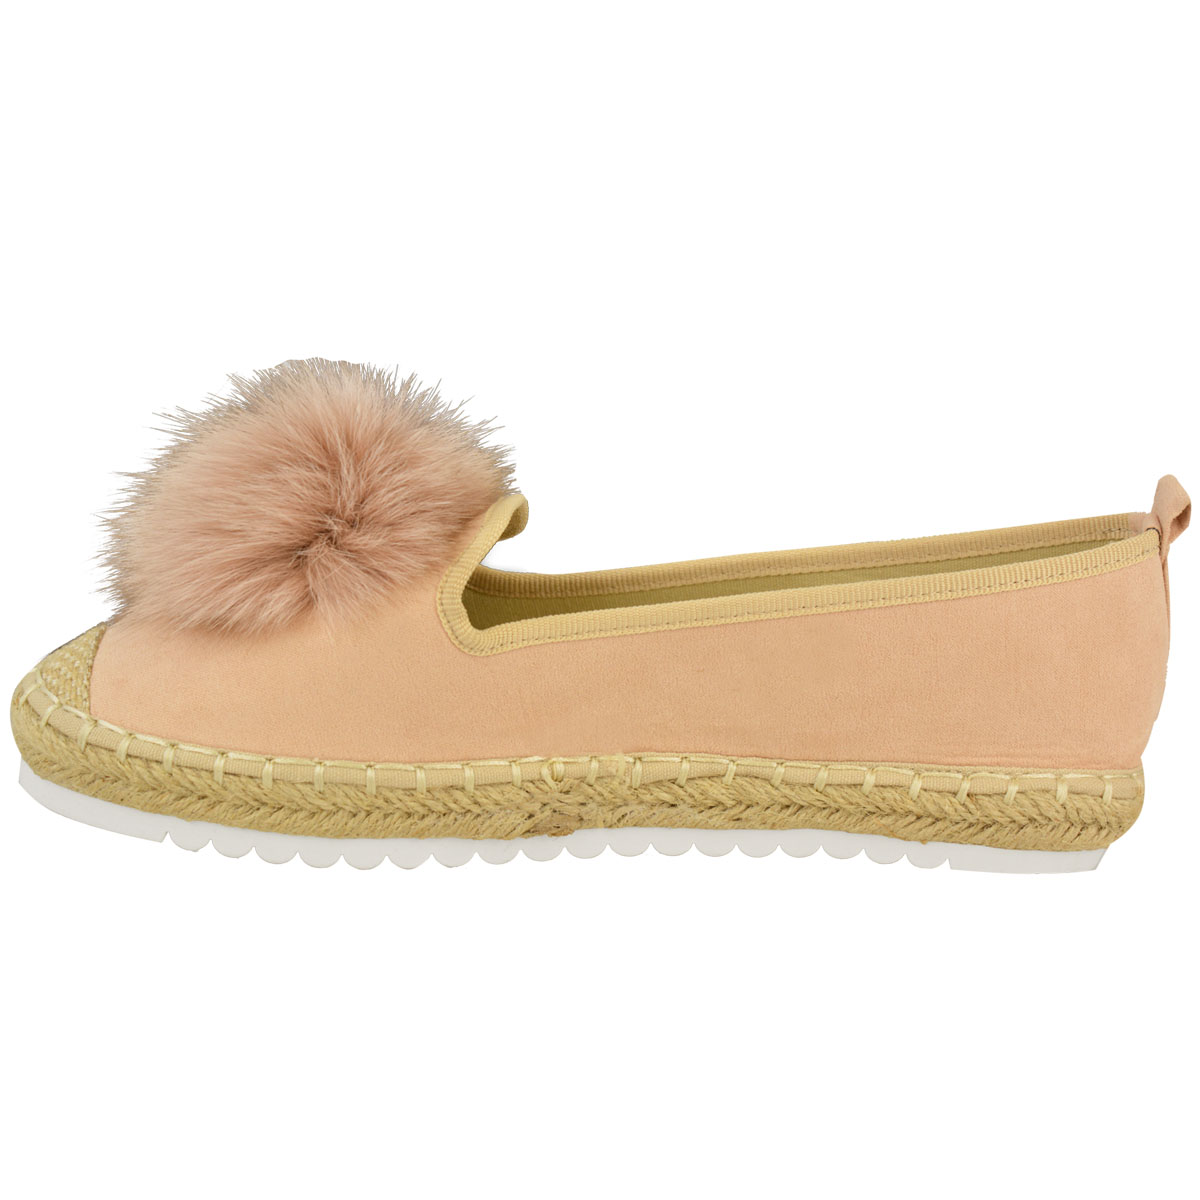 Womens-Ladies-Espadrilles-Flat-Pom-Pom-Sandals-Slip-On-Strappy-Comfy-Size-Shoes thumbnail 28